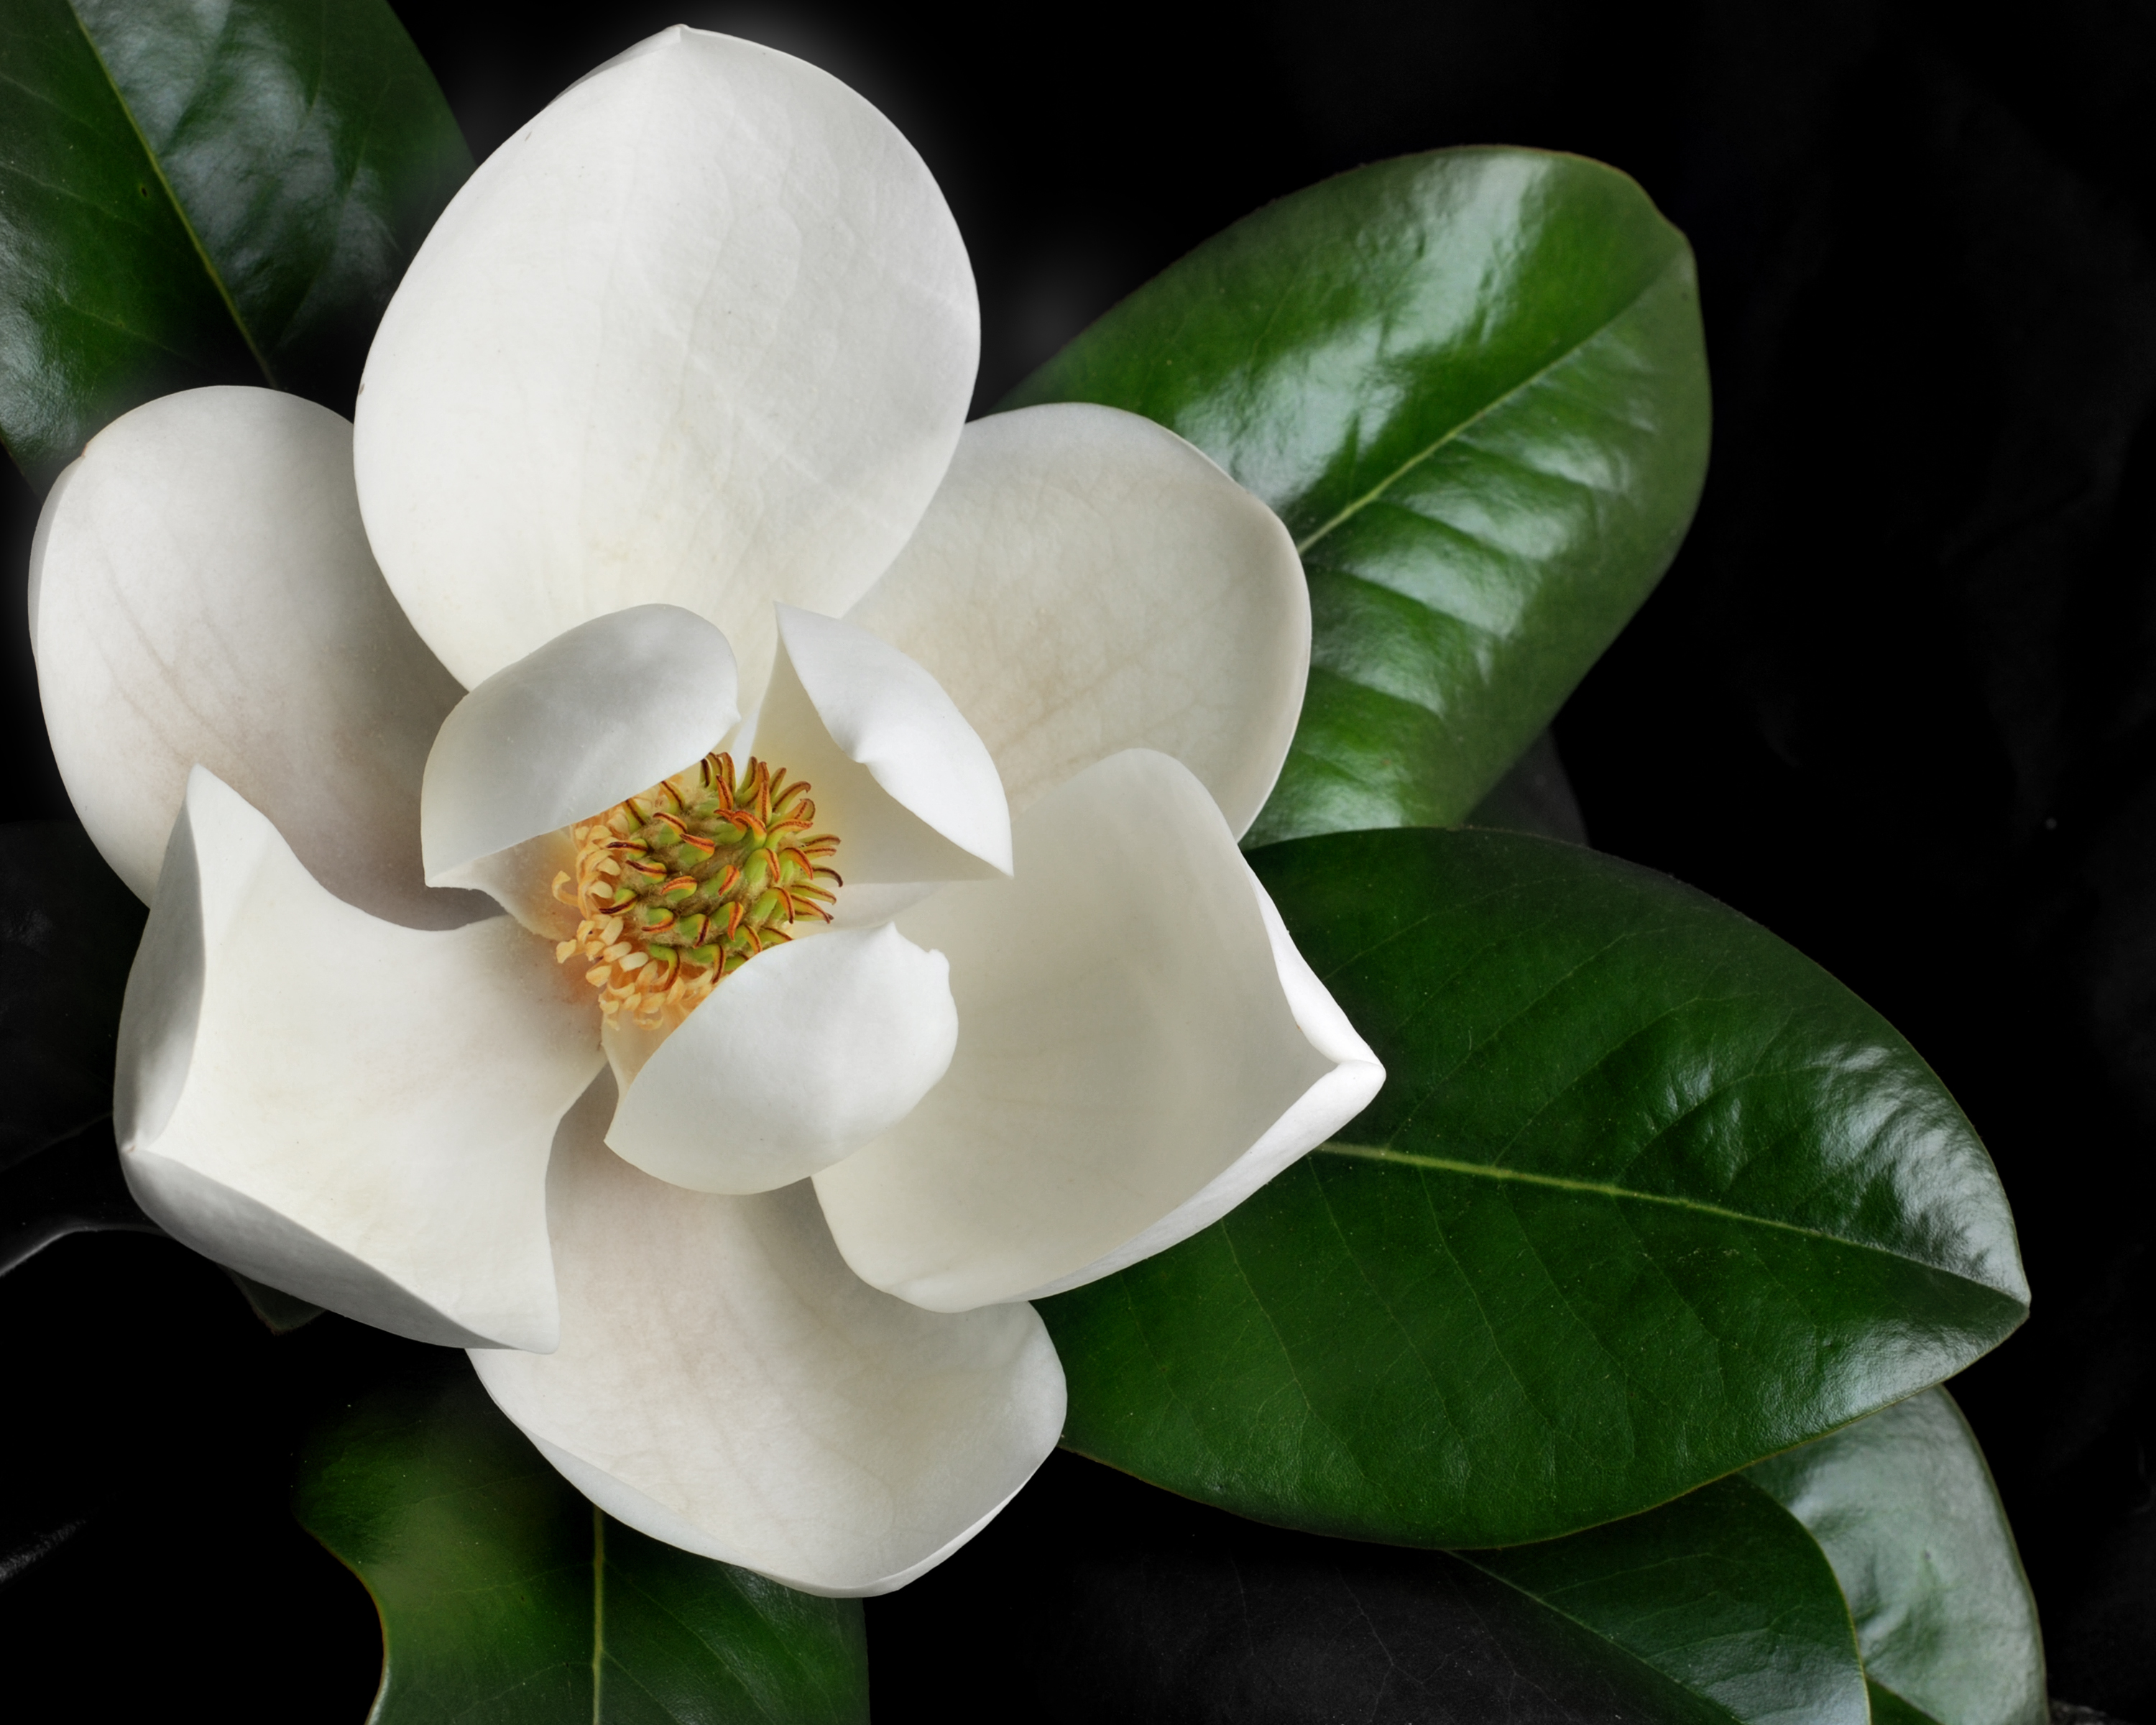 The Types Of Fertilizer To Deep Feed A Magnolia Tree Home Guides